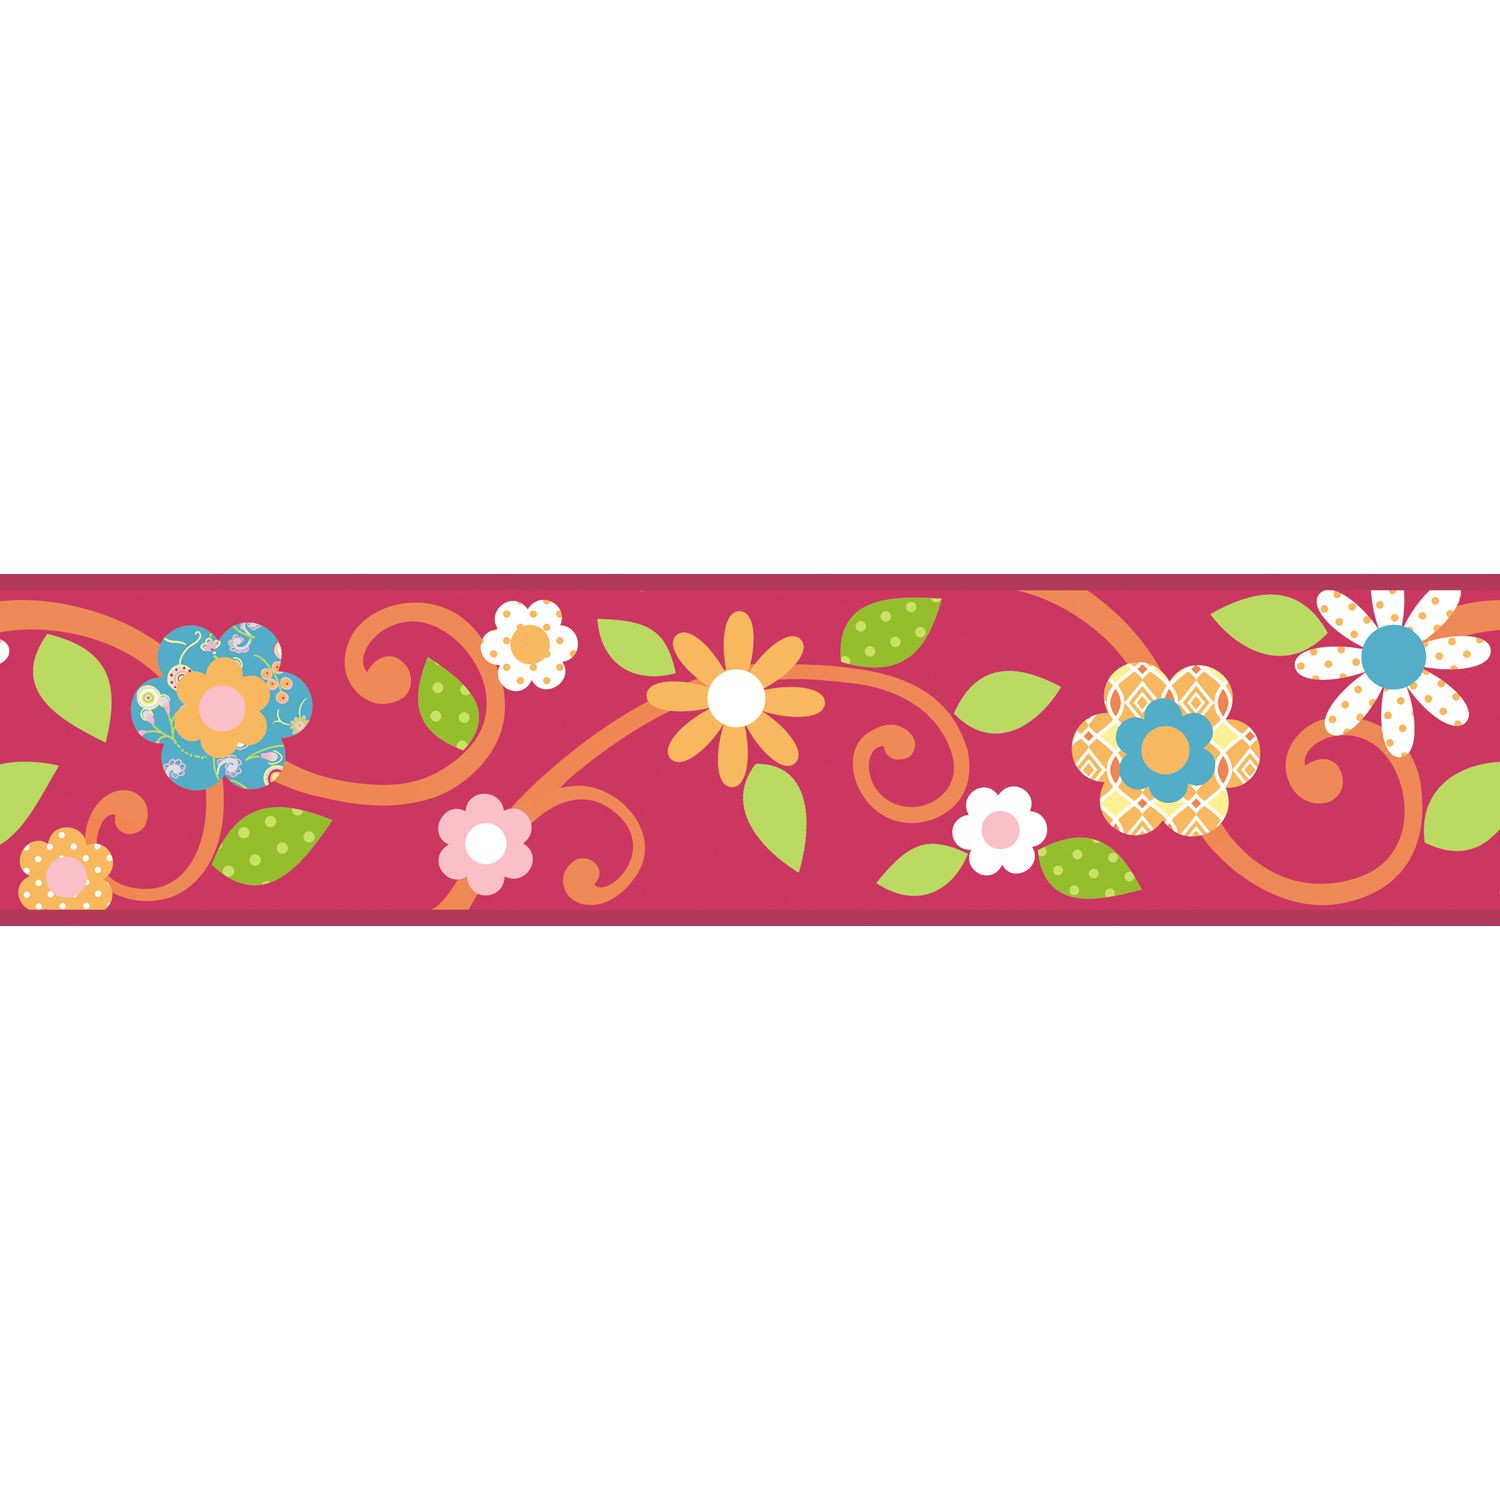 Paper Border Flower Designs ClipArt Best